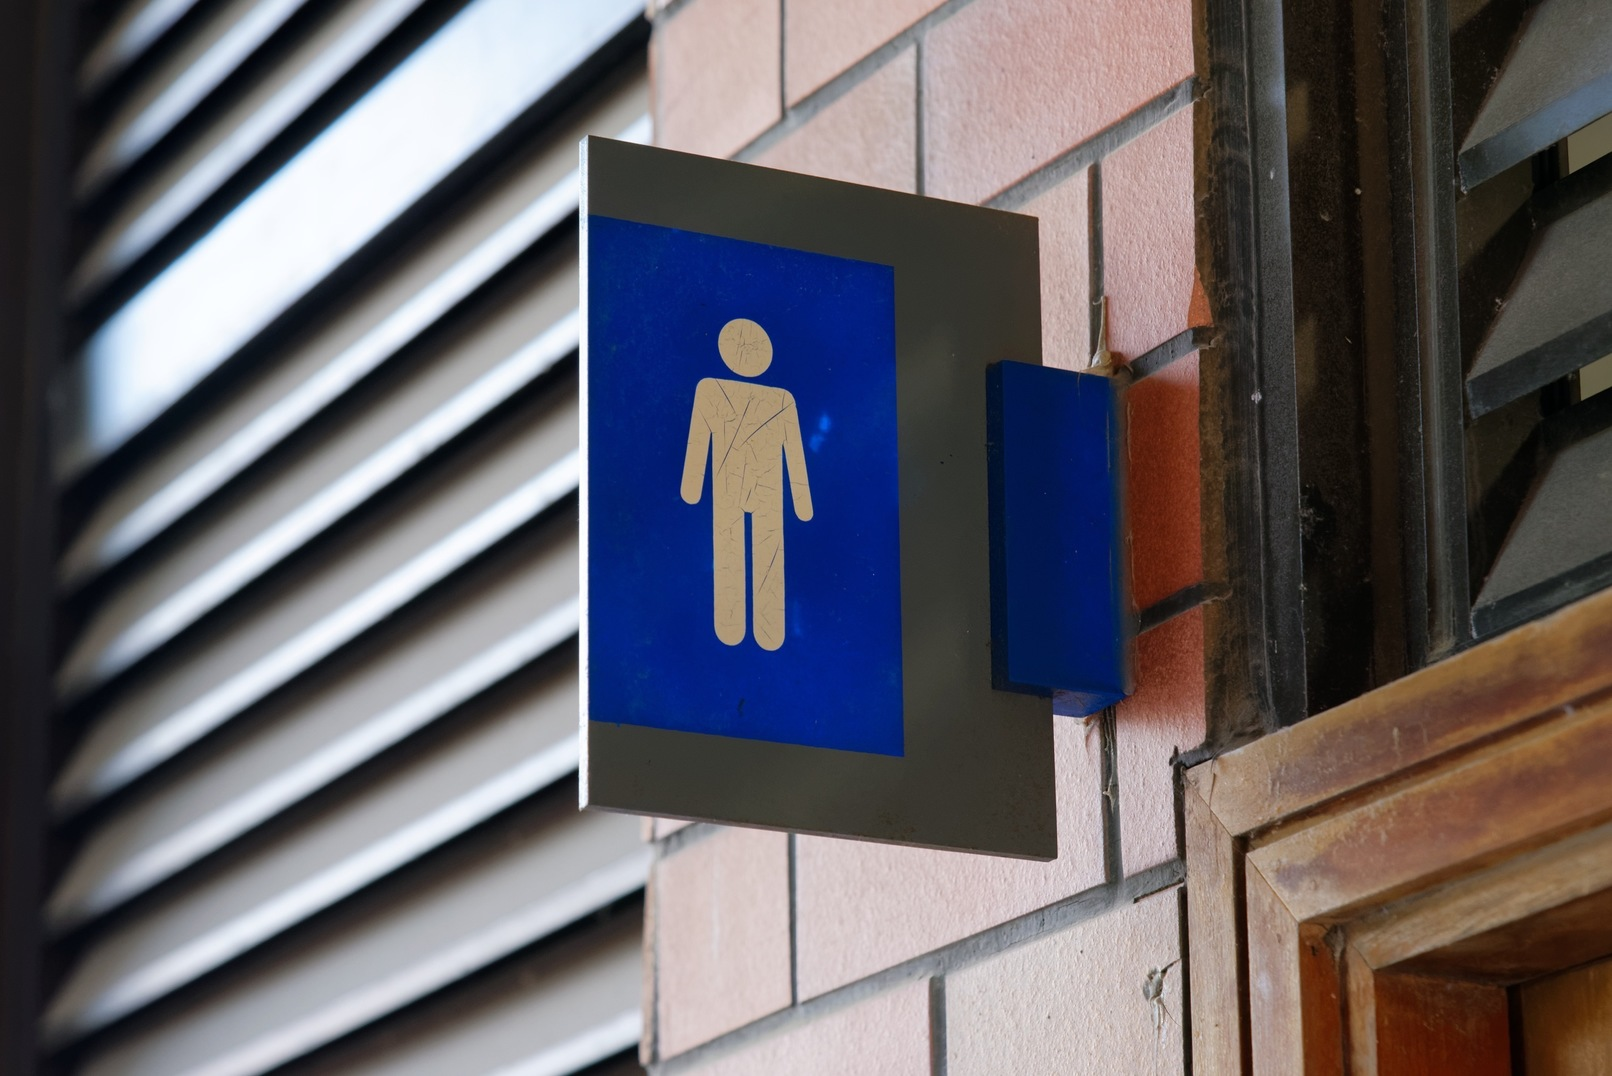 Transgender Florida High School Student Allowed to Use Men's Restroom